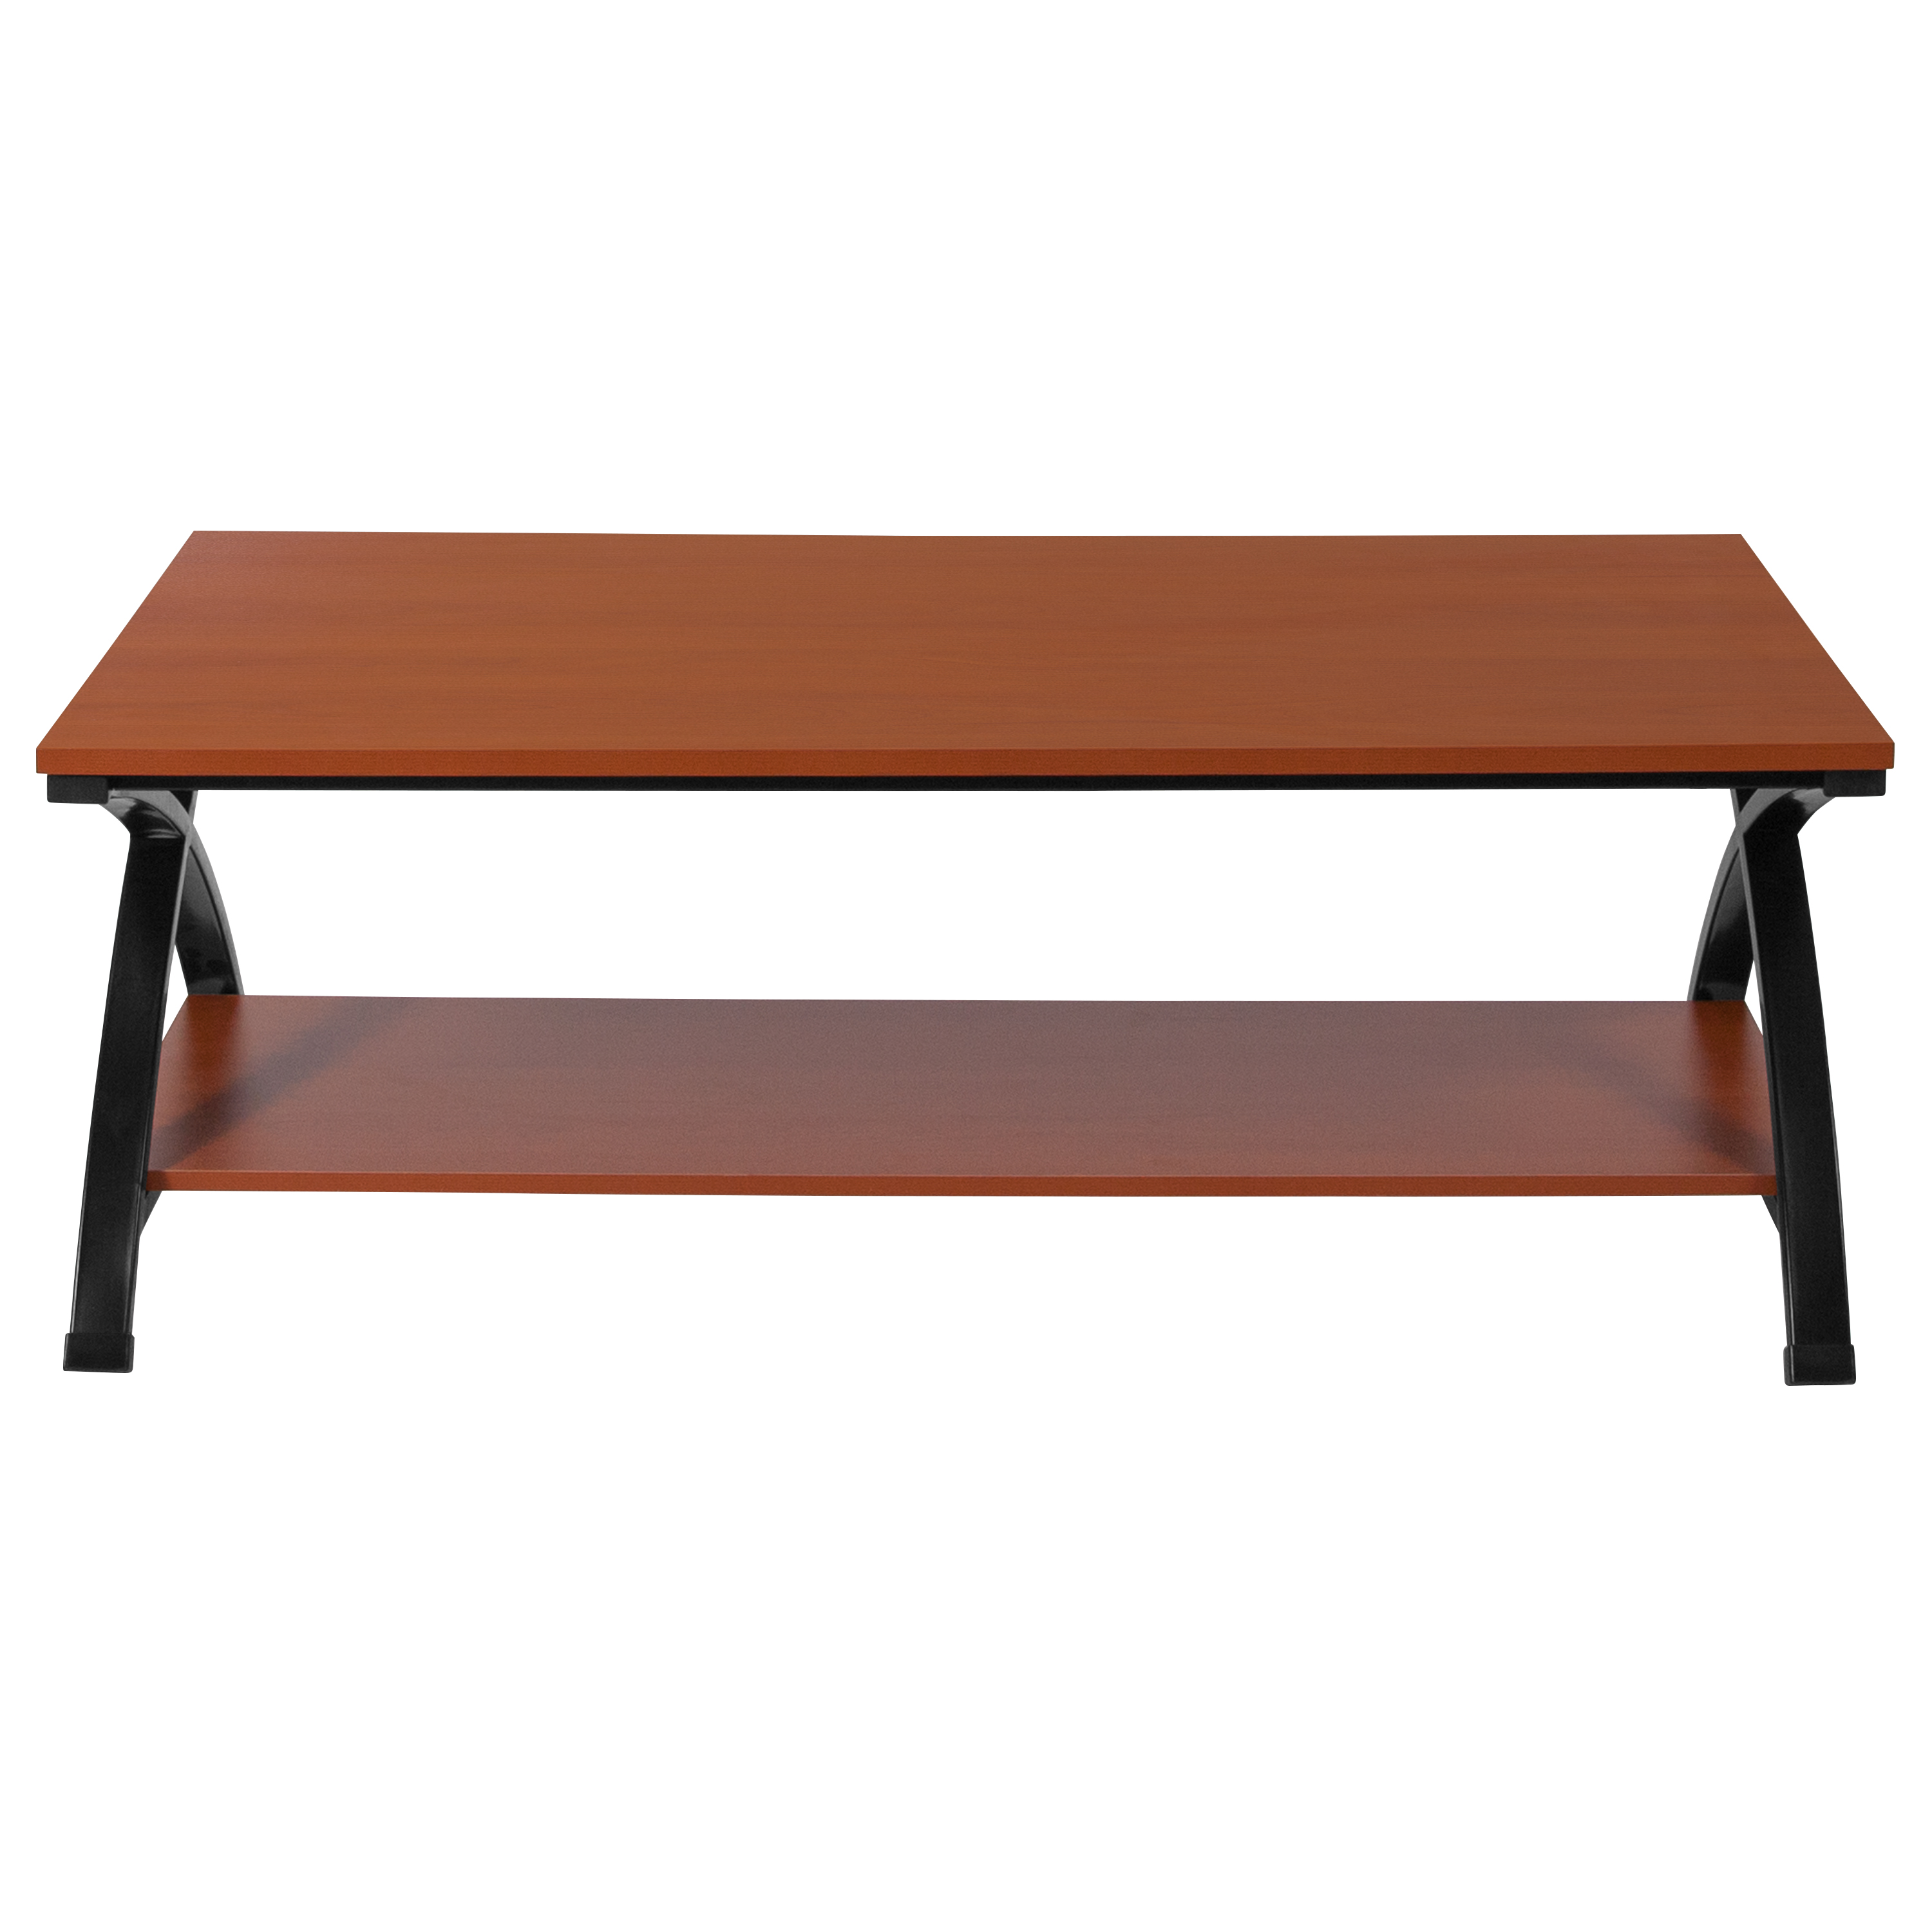 Outdoor Furniture Ringwood Flash Furniture Ringwood Cherry Wood Grain Finish Coffee Table With Black Metal Frame